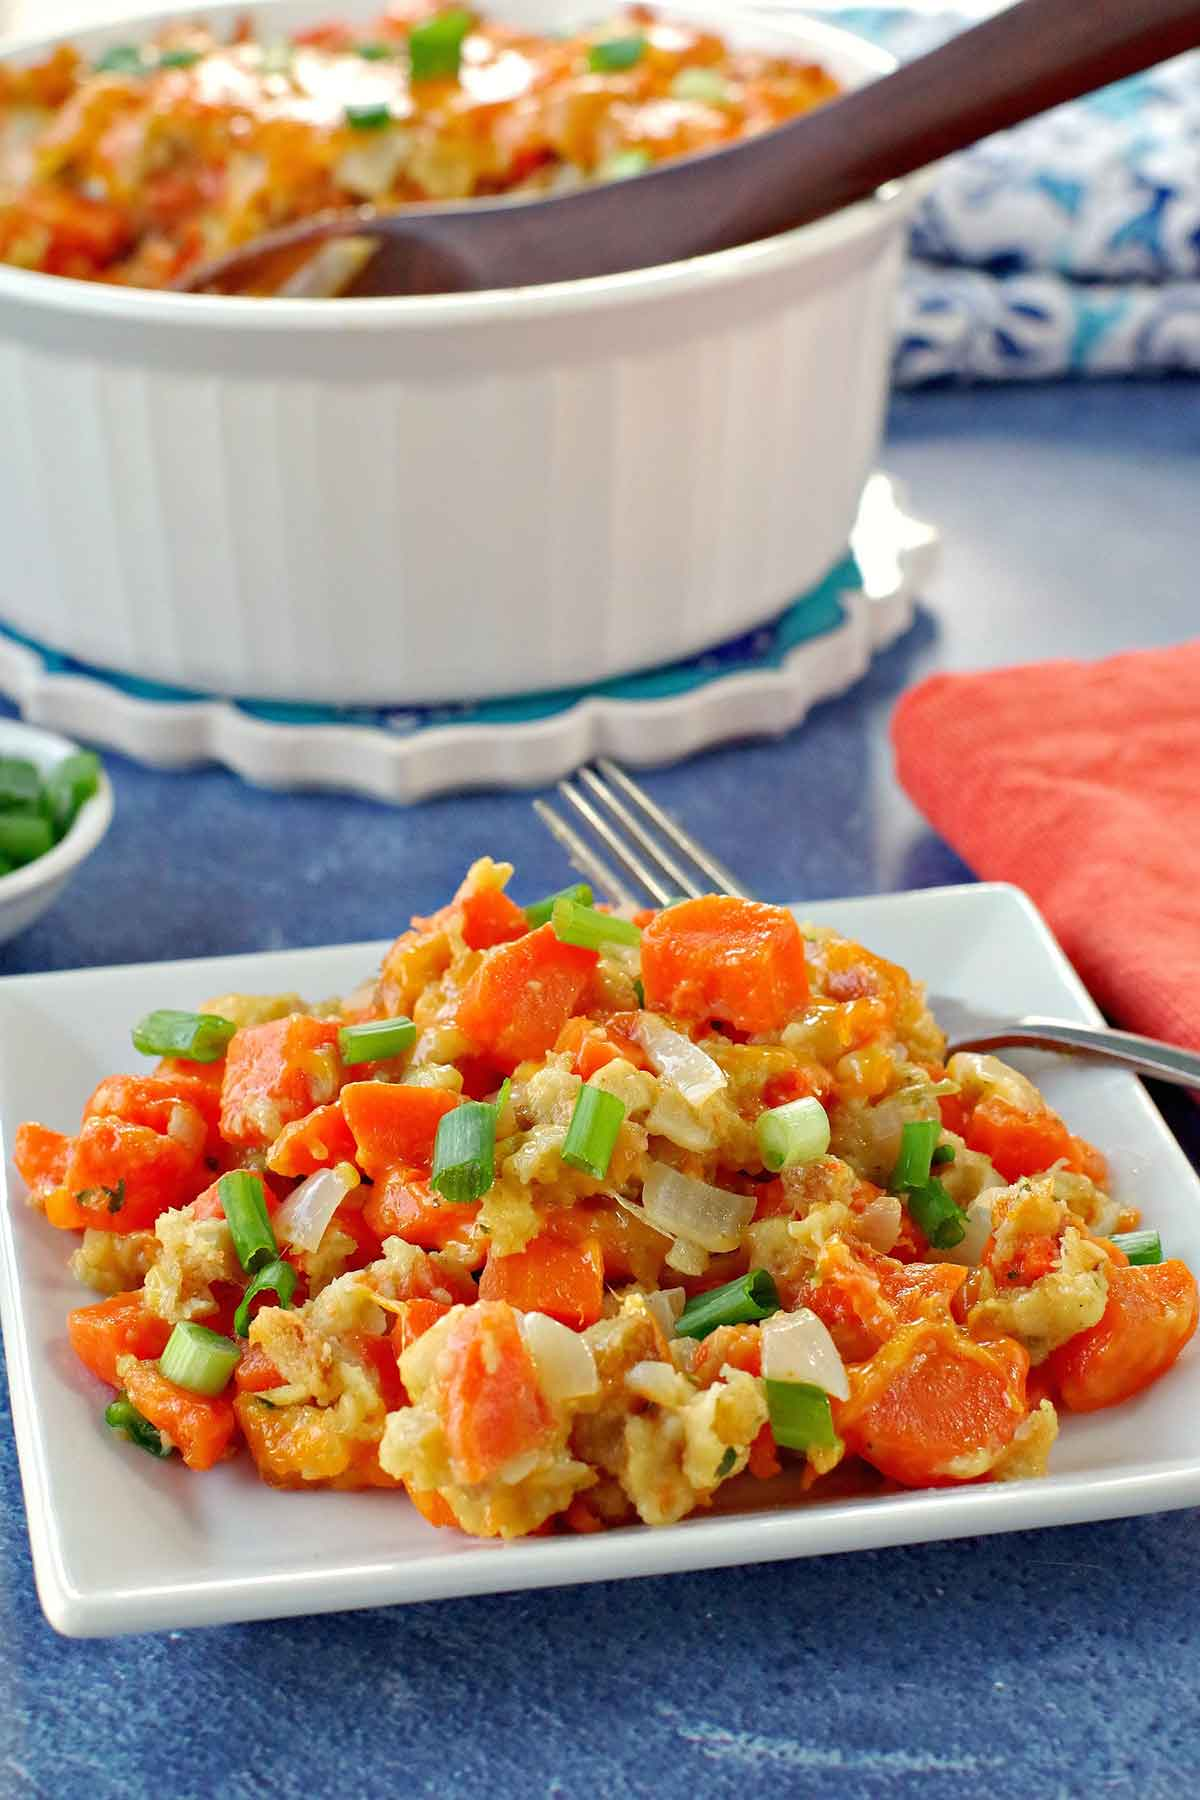 Carrot casserole on a plate with a bowl of casserole in the background.